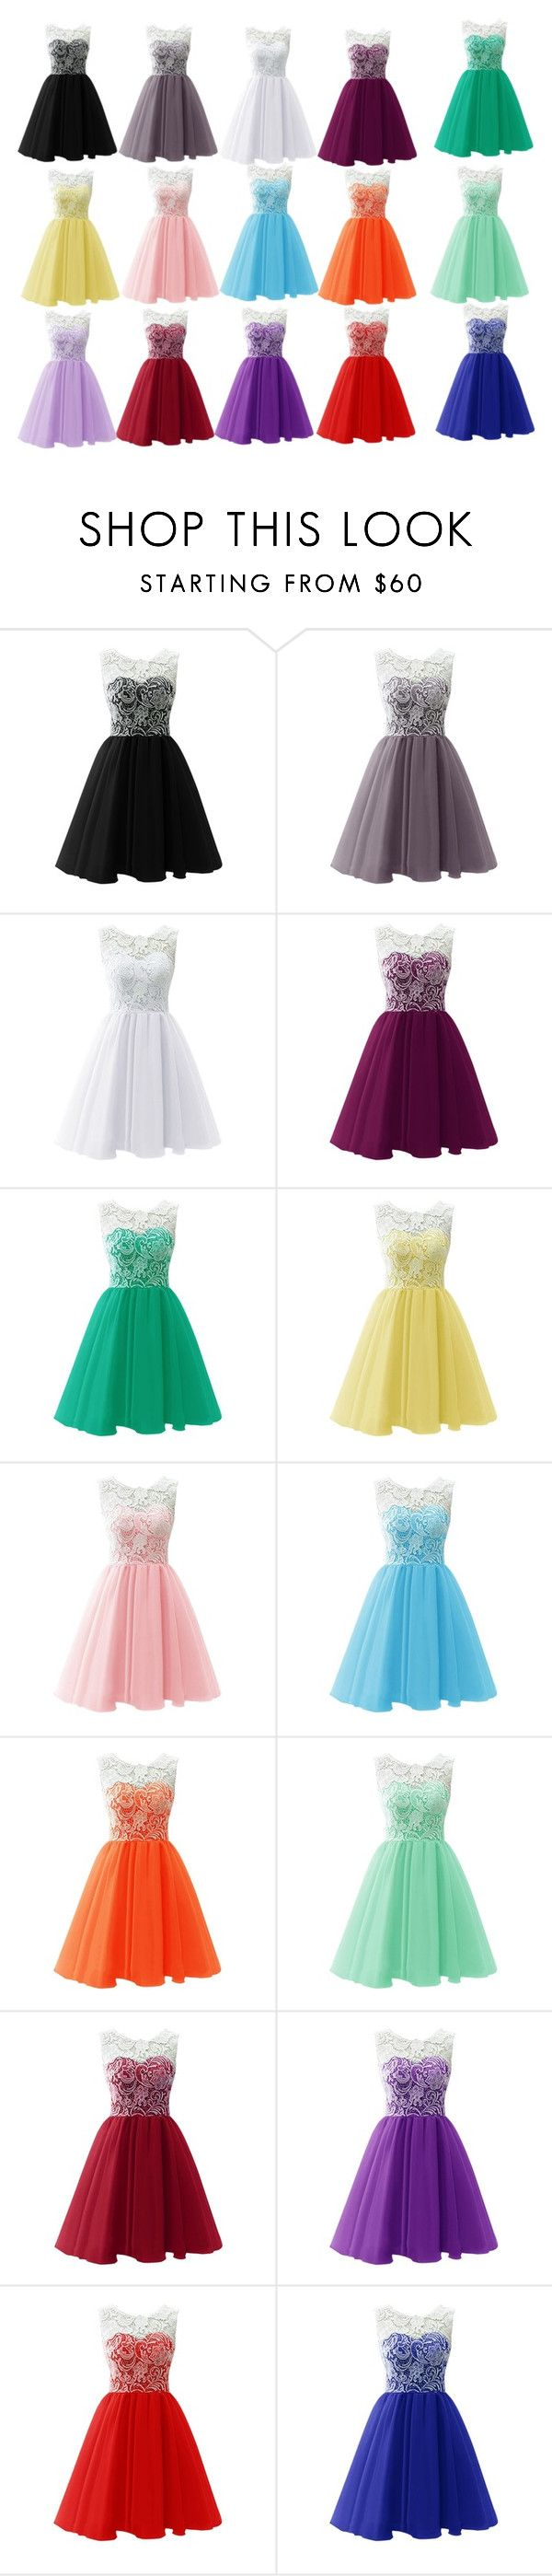 Best 20+ School dance dresses ideas on Pinterest | 8th grade dance ...